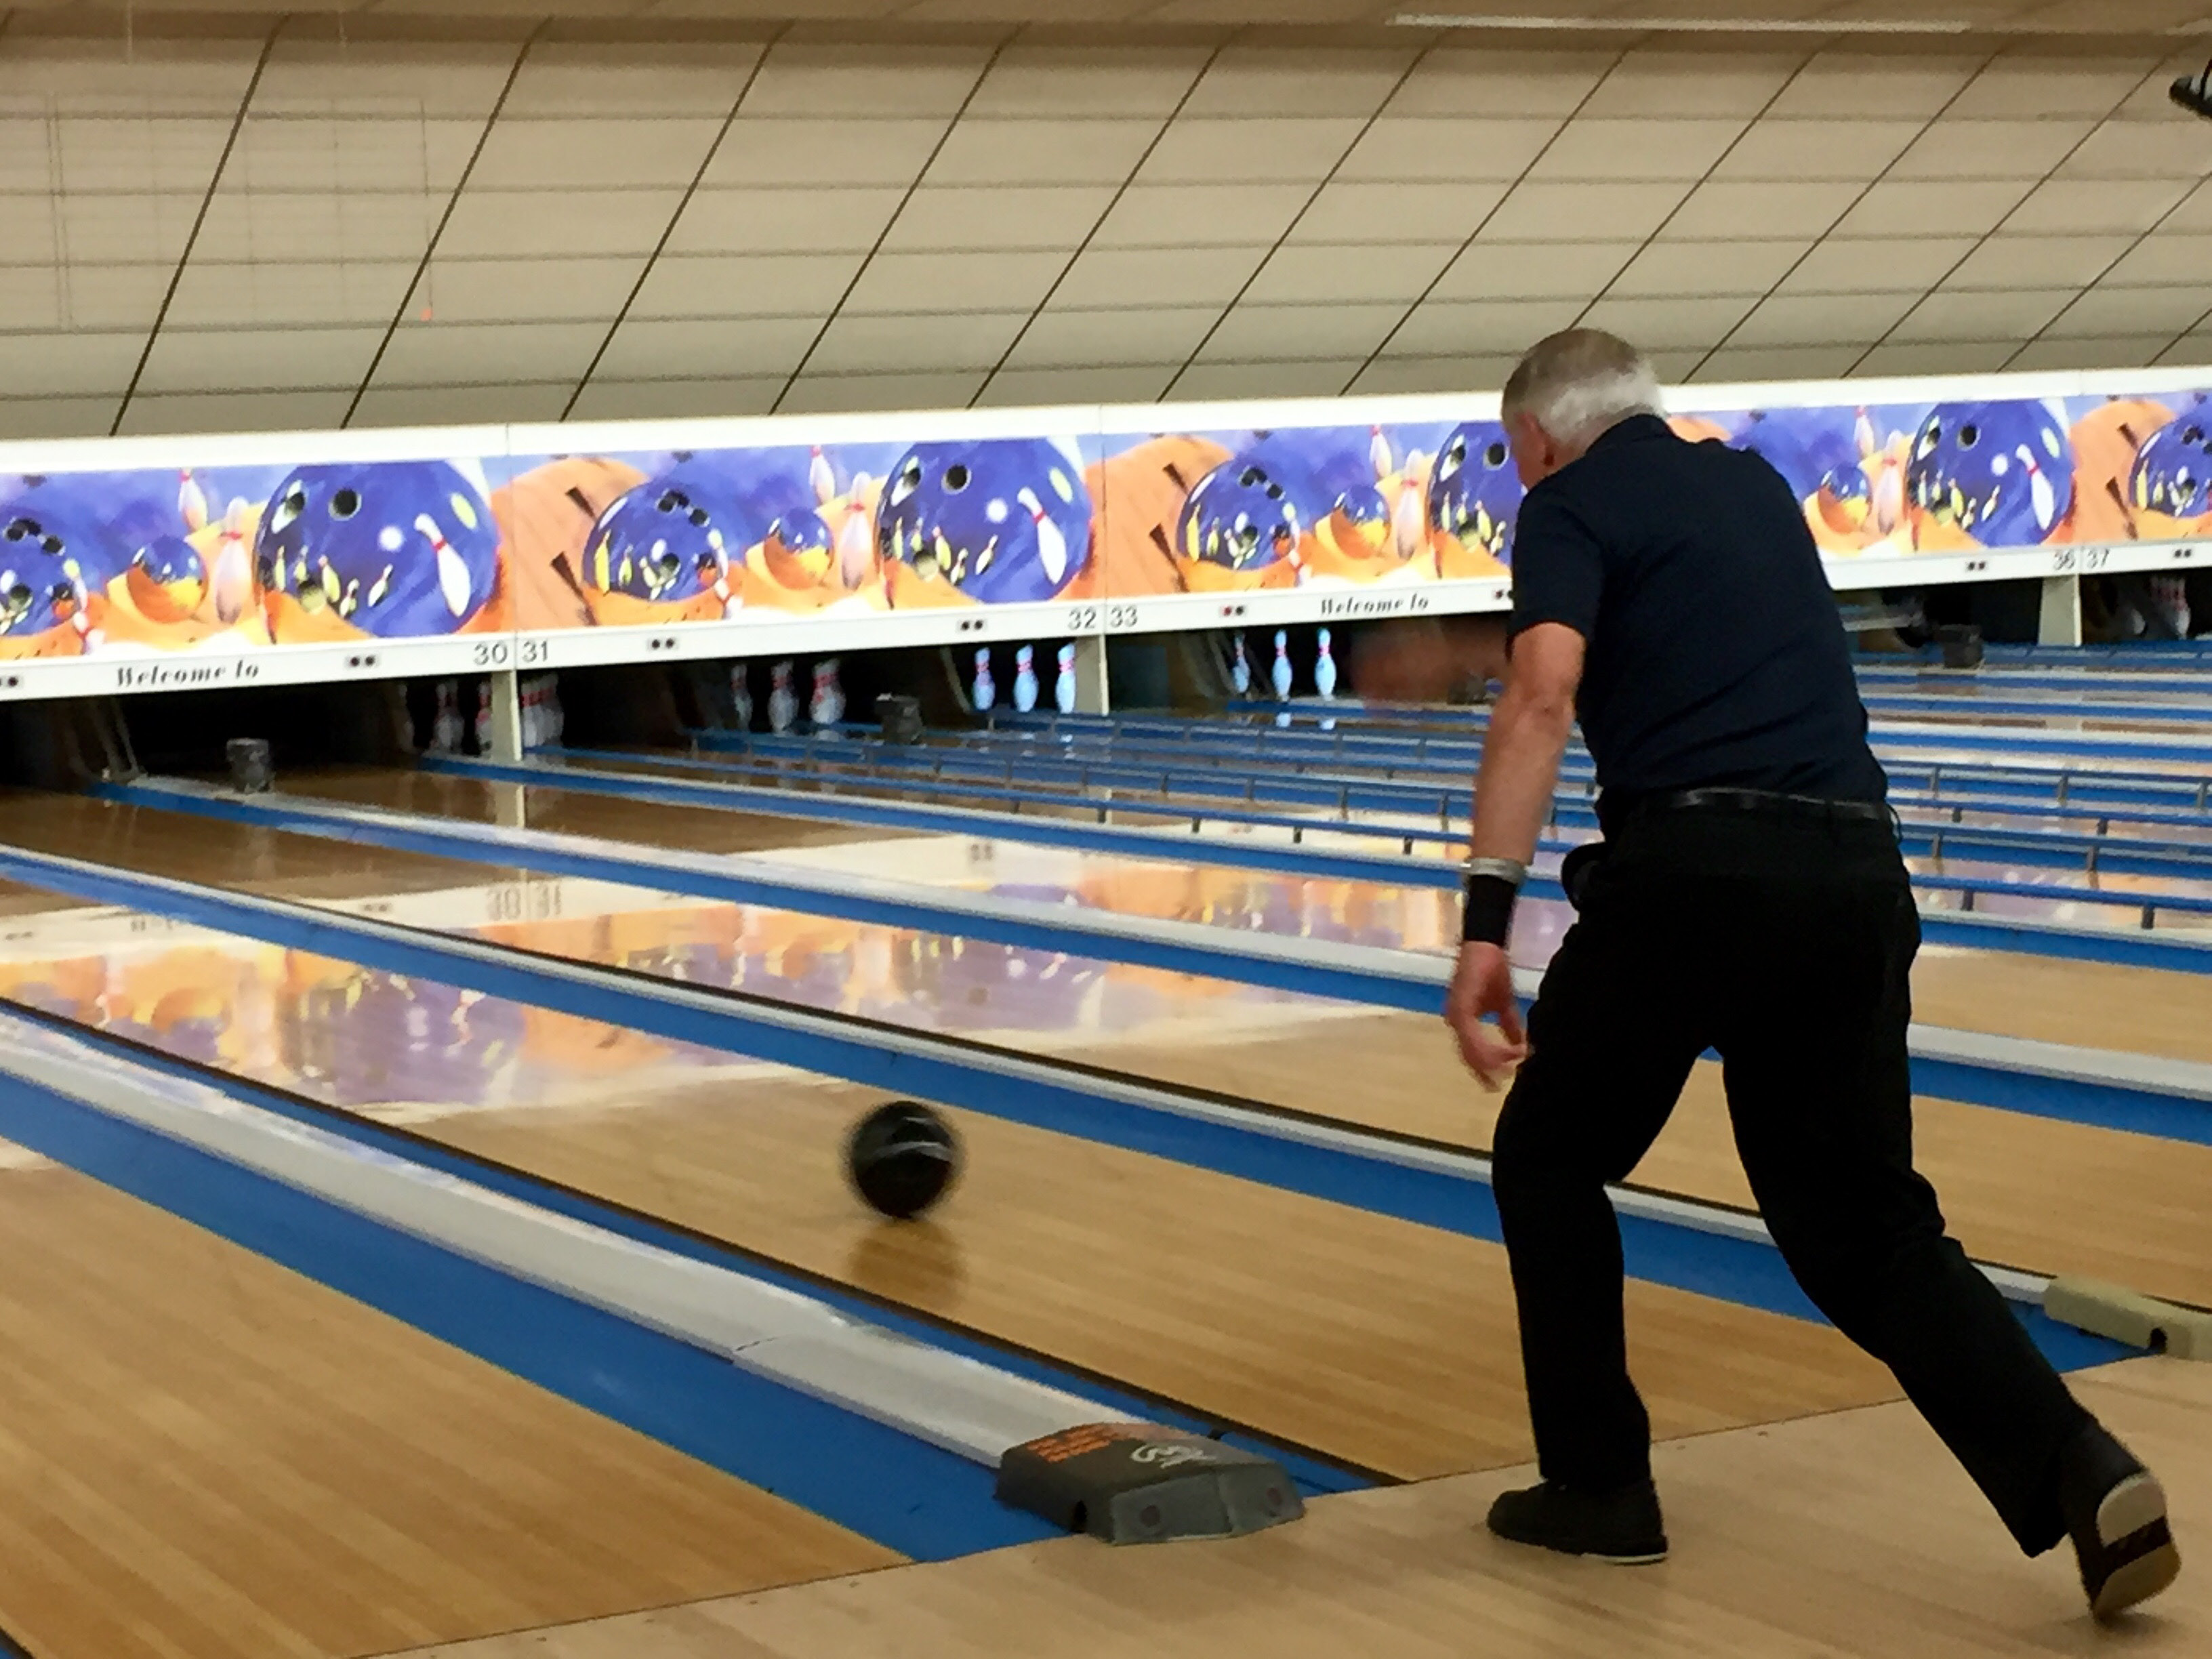 Carter Flatt bowls at the renovated facility, Monday, Aug. 22. | Ashley Kus, The Plainville Citizen